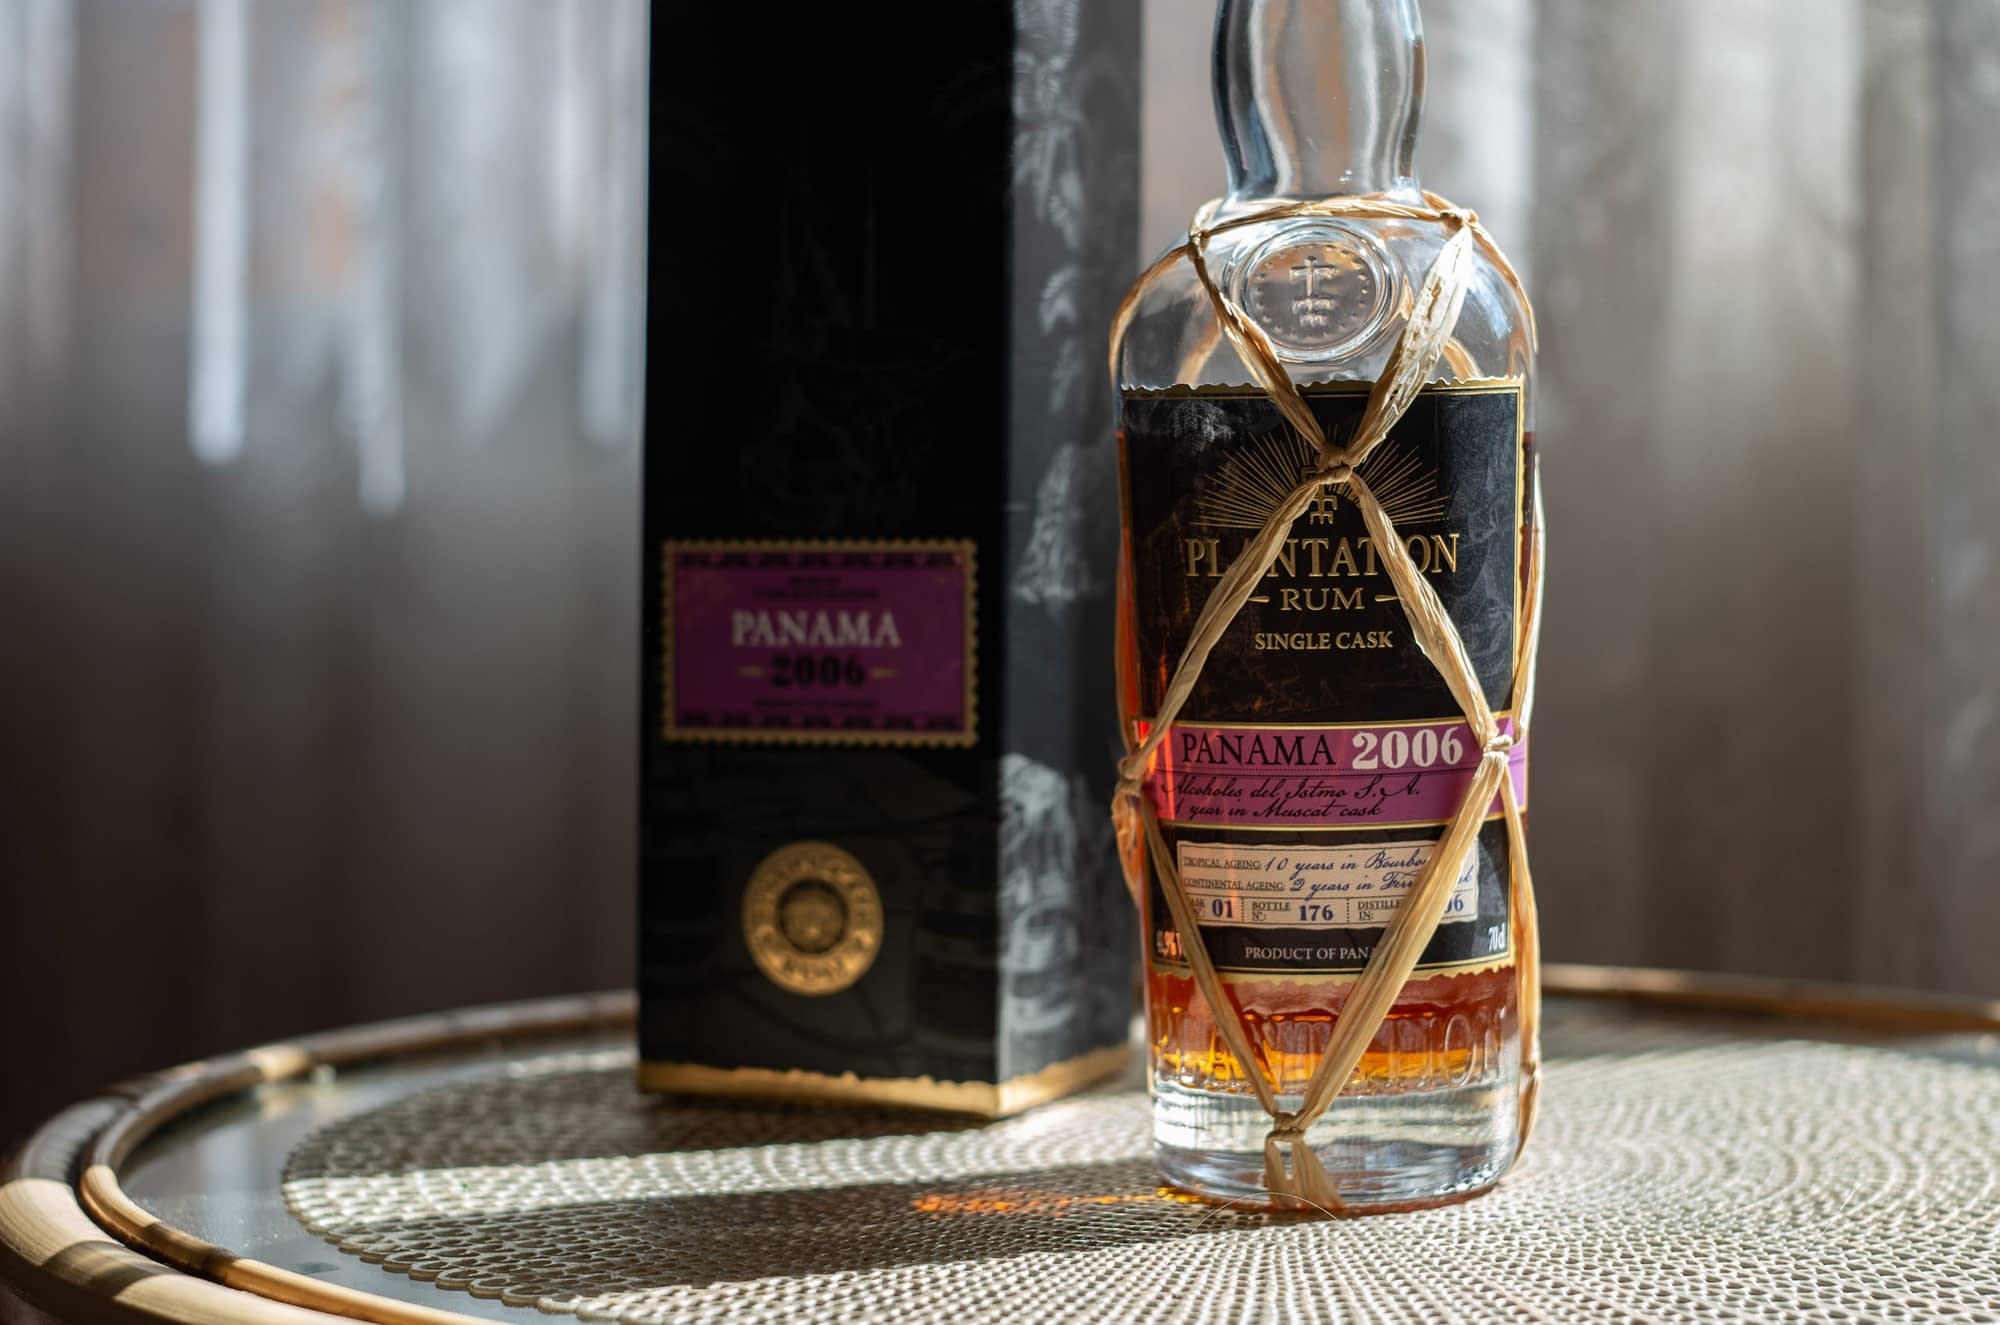 Plantation Single Cask Panama 2006